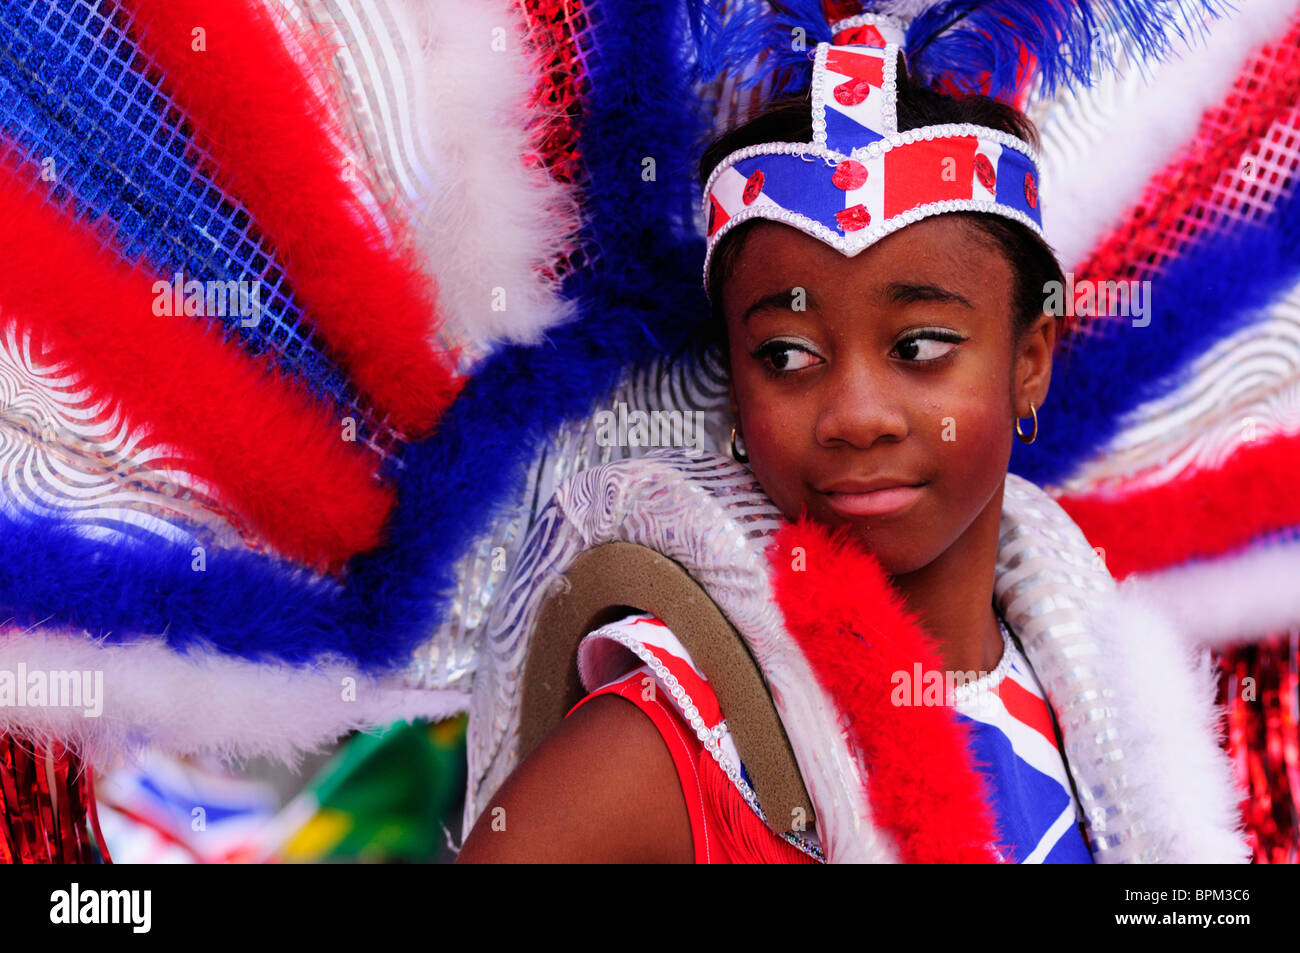 Portrait of a girl dancer at the Notting Hill Carnival Children's Day Parade, London, England, UK - Stock Image